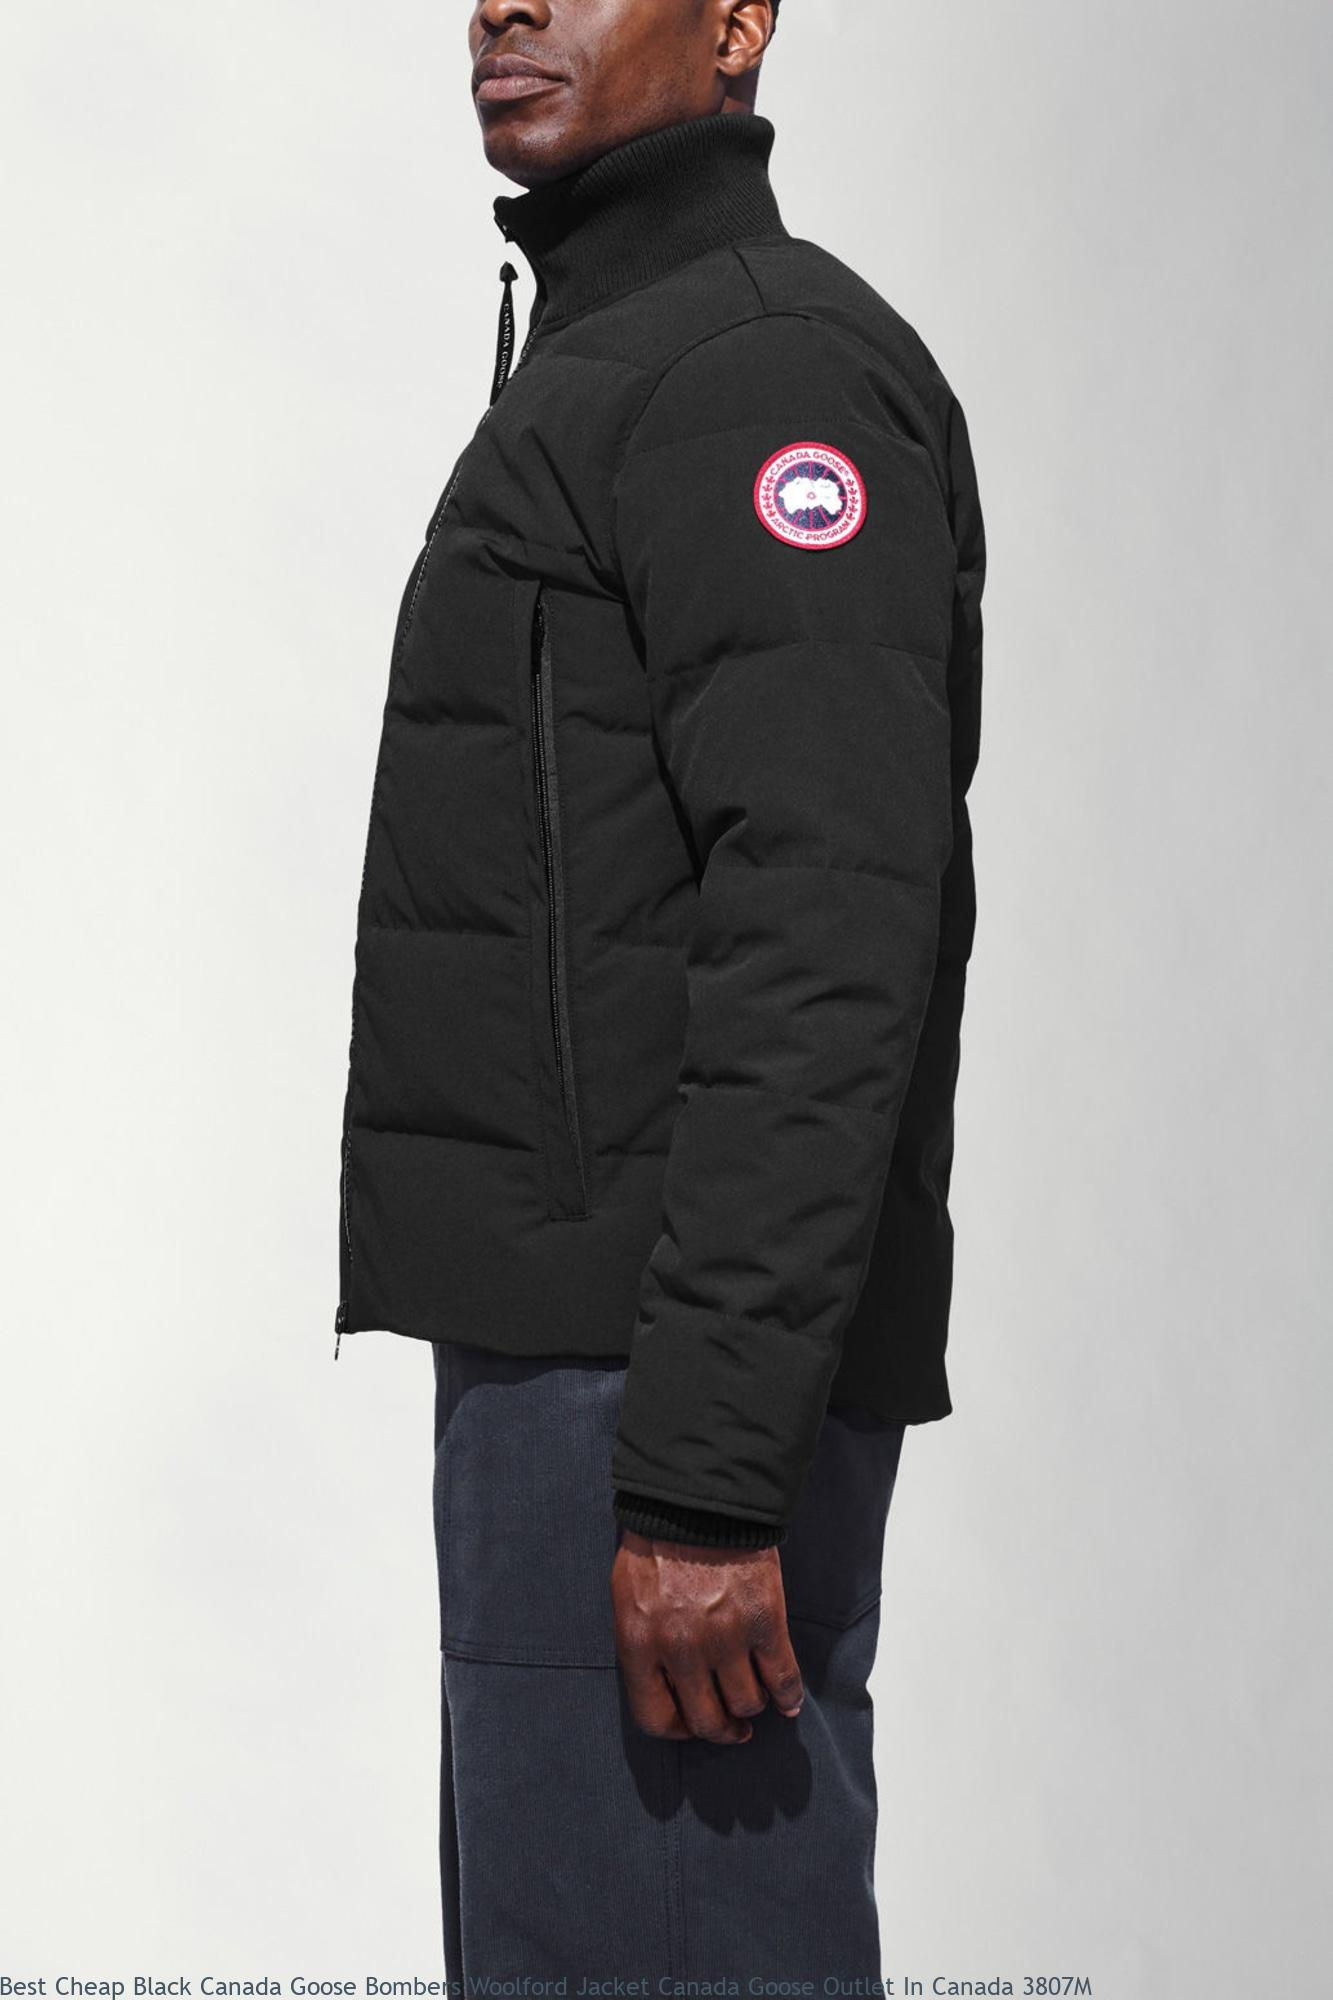 26c15591c6f Best Cheap Black Canada Goose Bombers Woolford Jacket Canada Goose Outlet  In Canada 3807M – Cheap Canada Goose Jackets Outlet Sale Online Store Free  ...